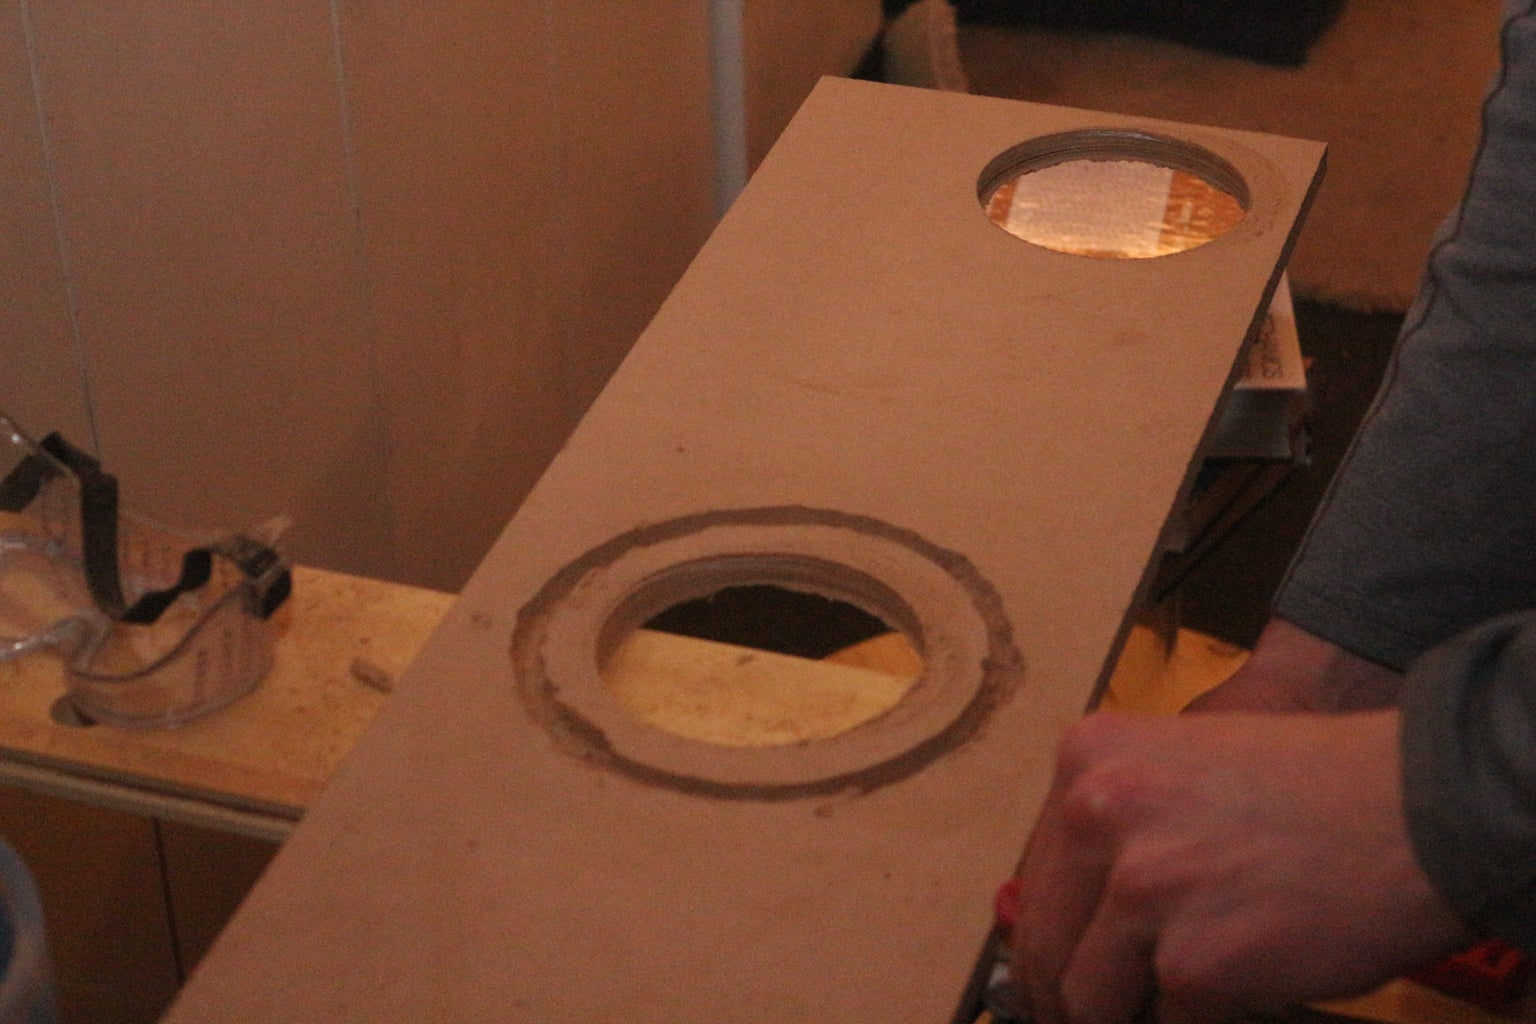 Preparing the Inner (spinning) Pipe and Its Handle